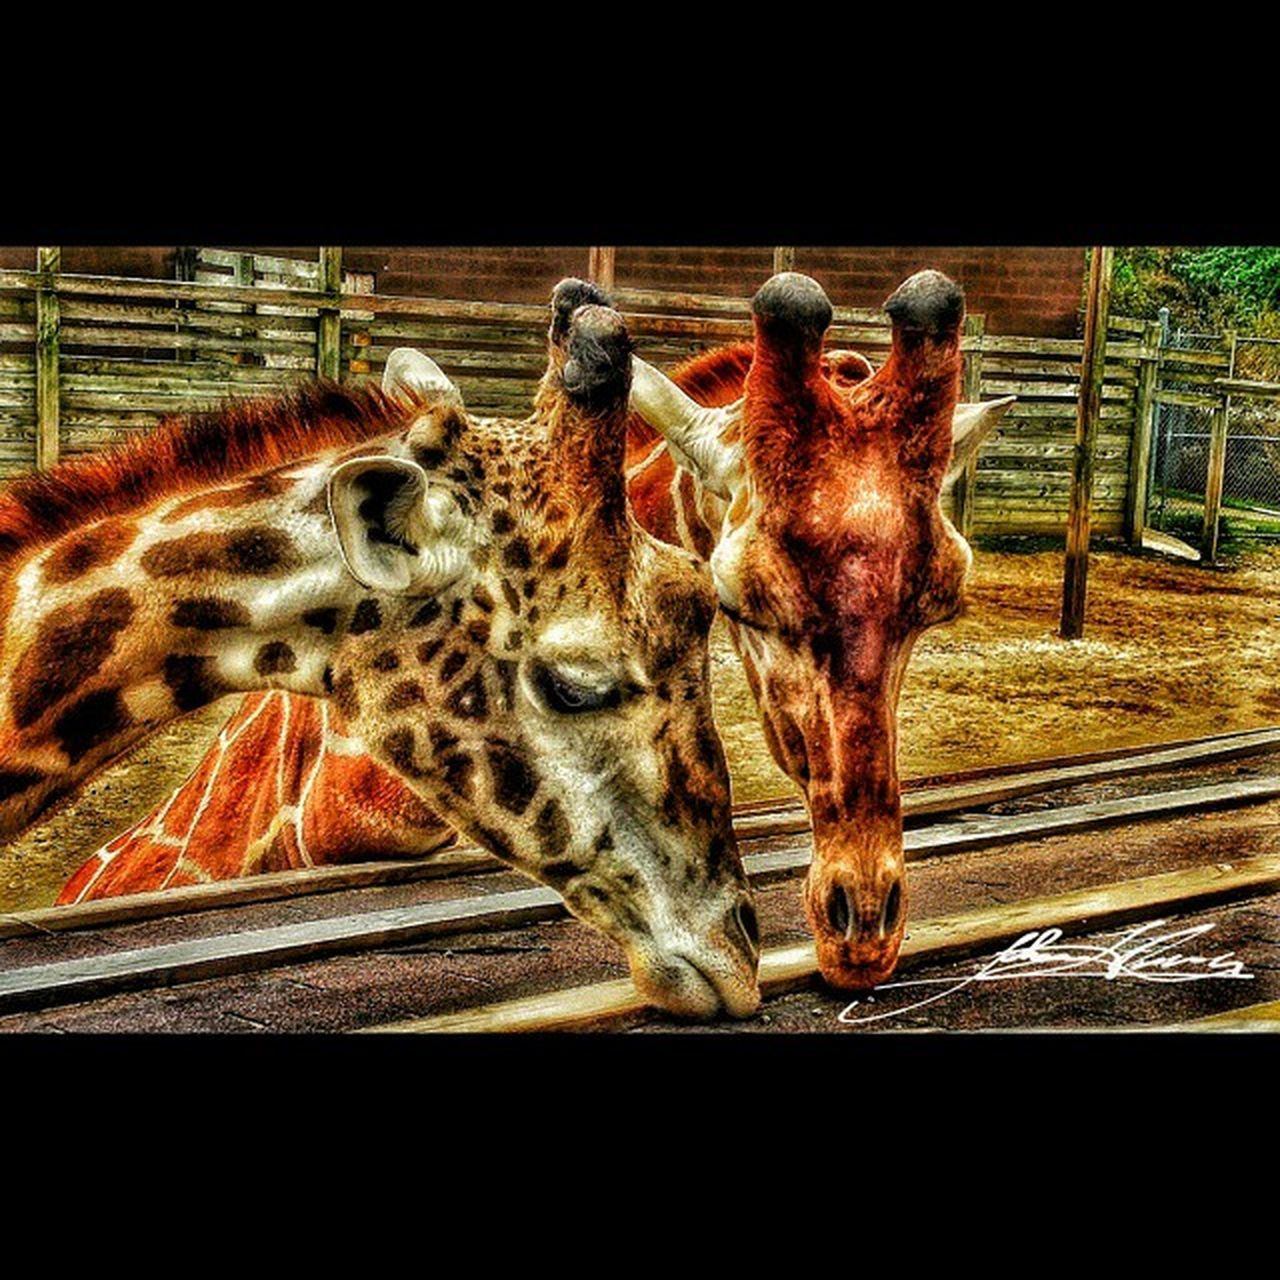 Squareinstapic @studio8apps Emotions Love Nature Photography Petsandanimals Spring Zoo Friends Thankful Giraffes Richmondmetrozoo ichmondmetrozoo Pettingzoo Zooanimals Giraffesarecool Feedinggiraffes